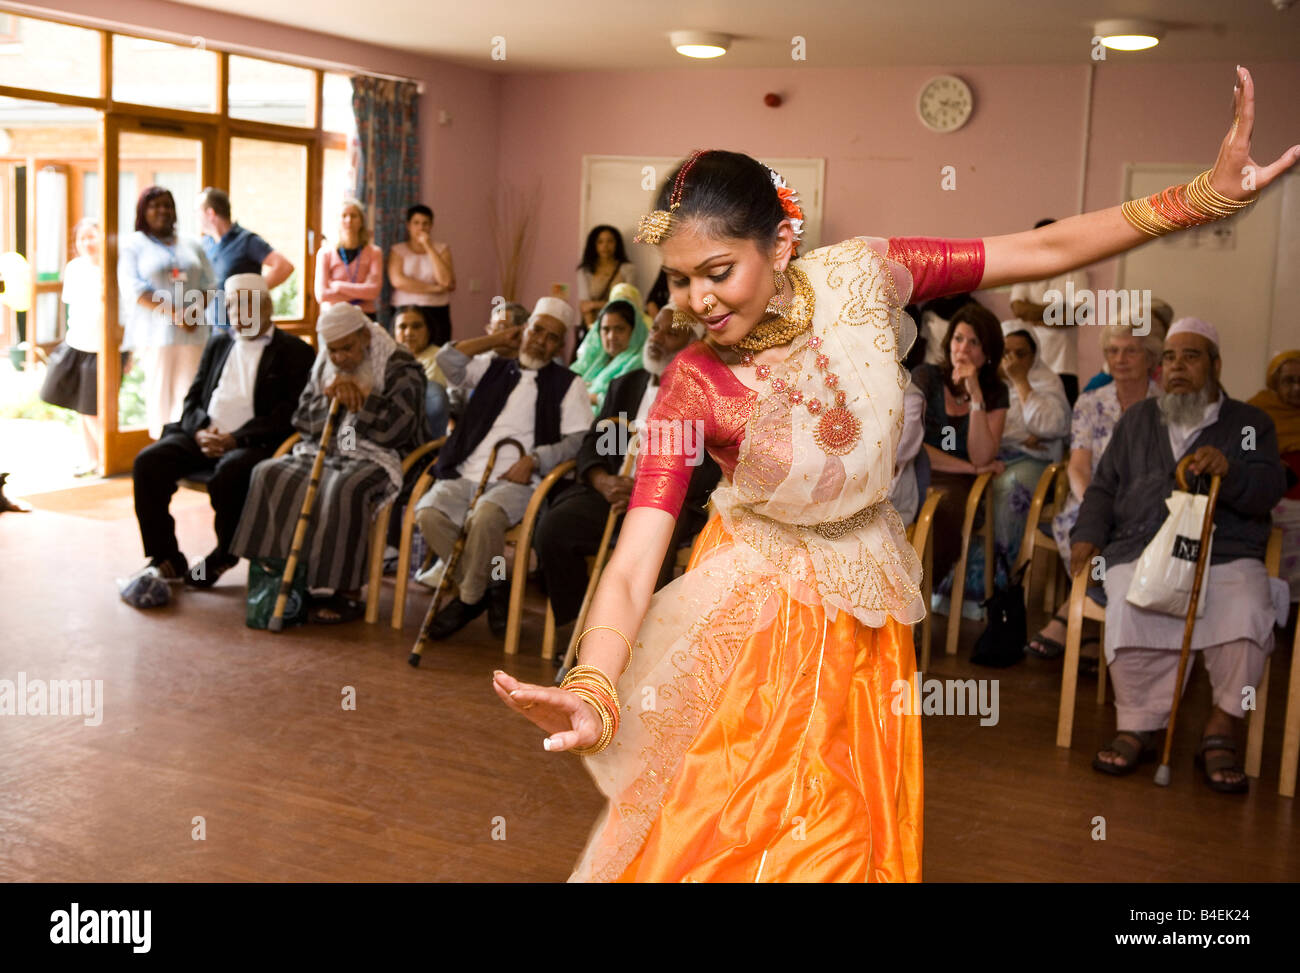 Bangladeshi dancer performing at an old people's home in London's East End - Stock Image